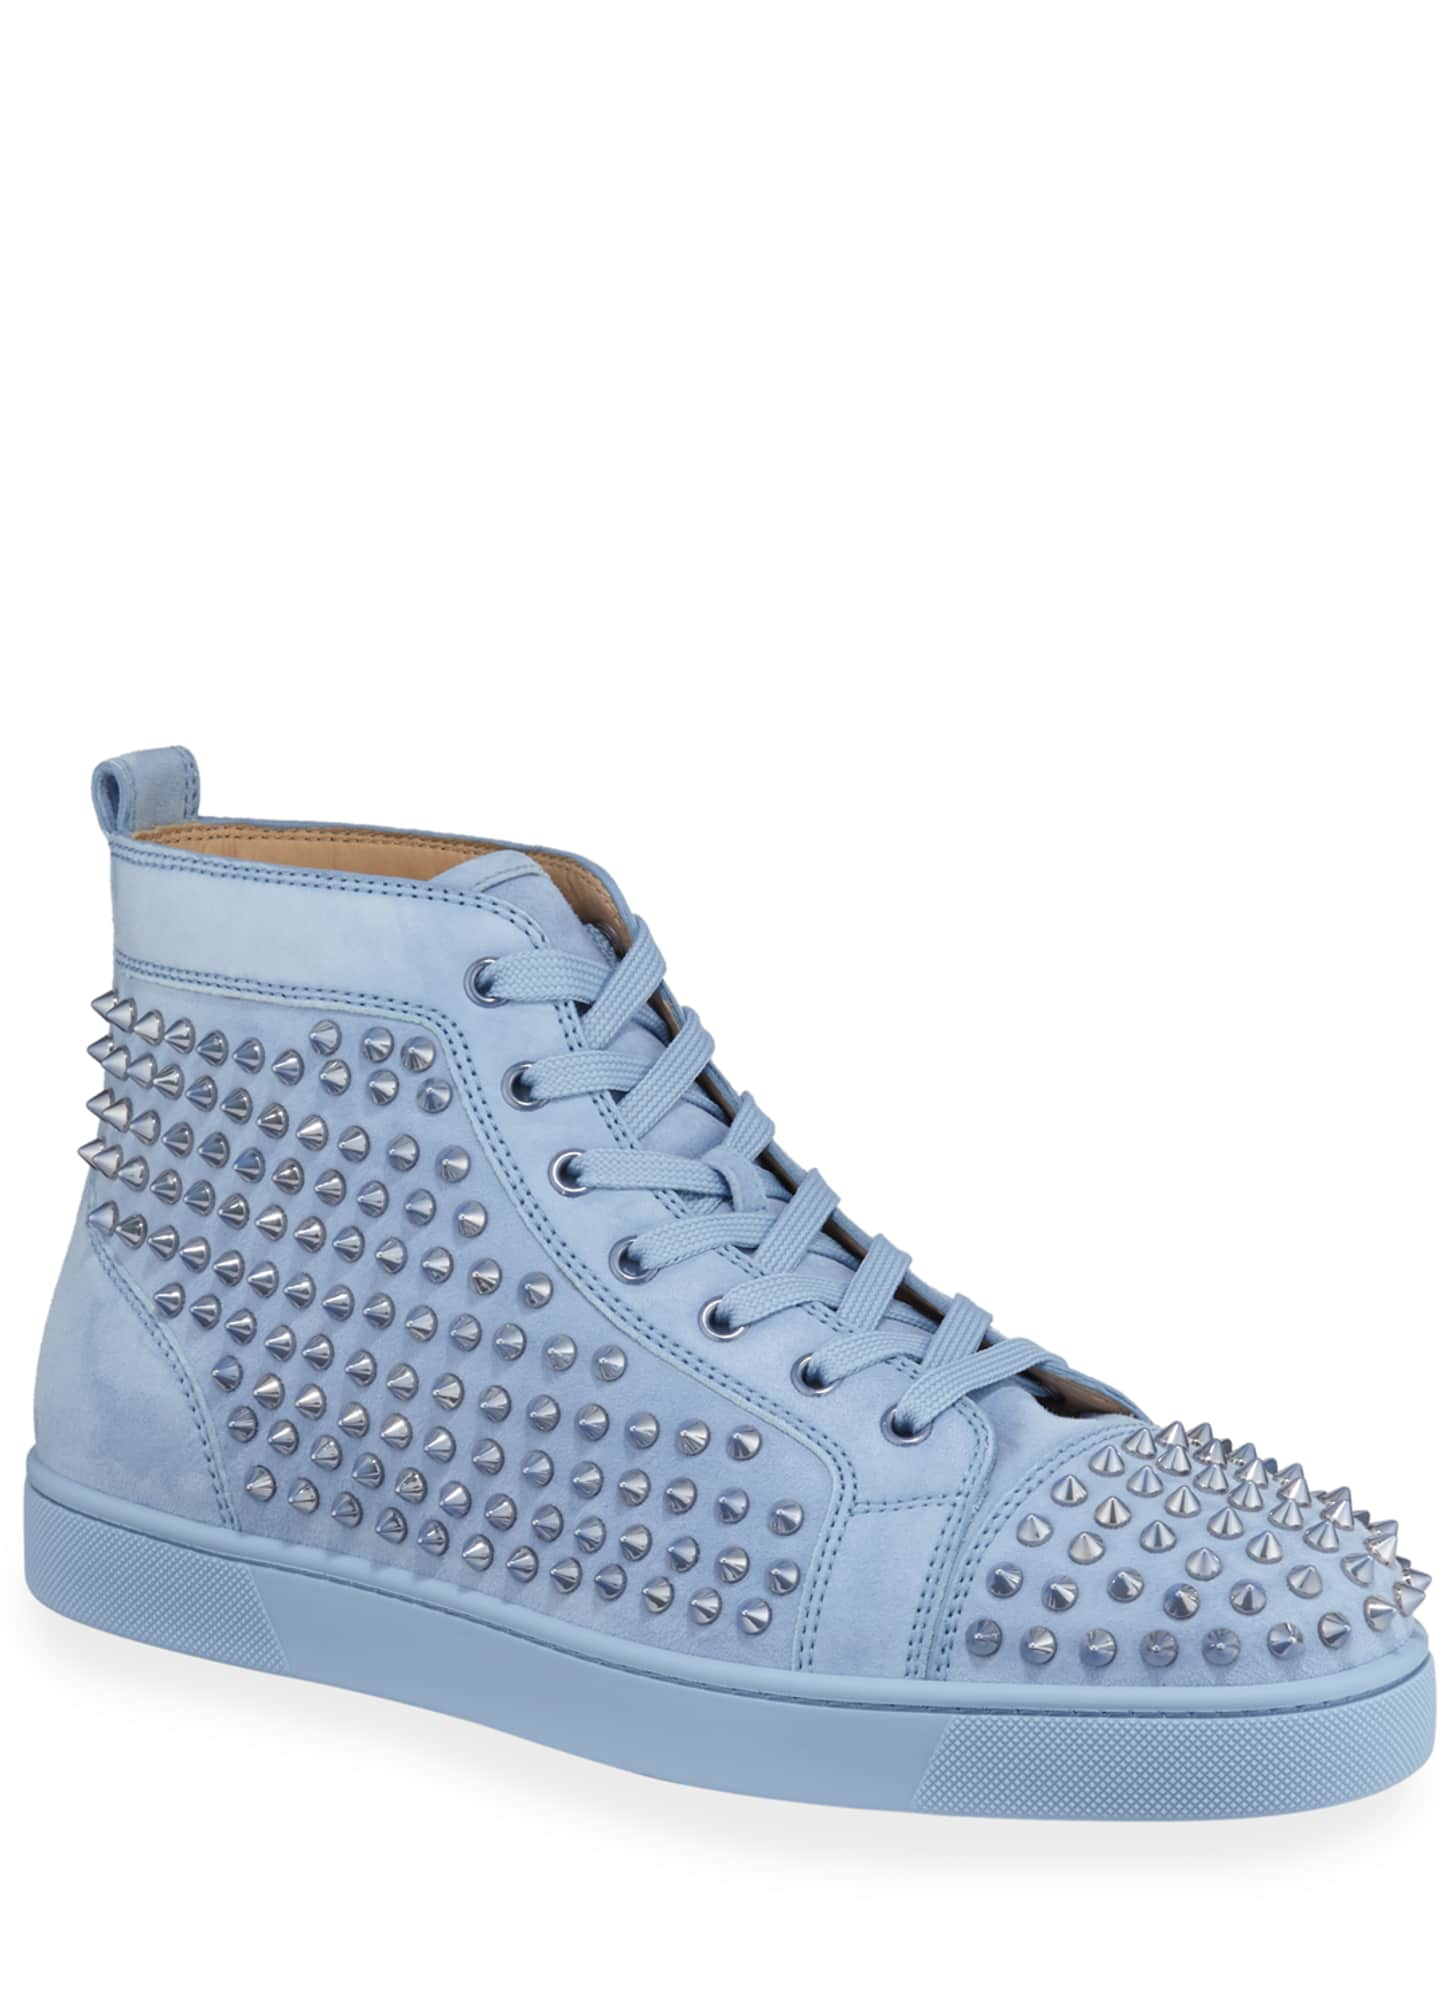 Christian Louboutin Men's Louis Spike-Studded Suede Sneakers